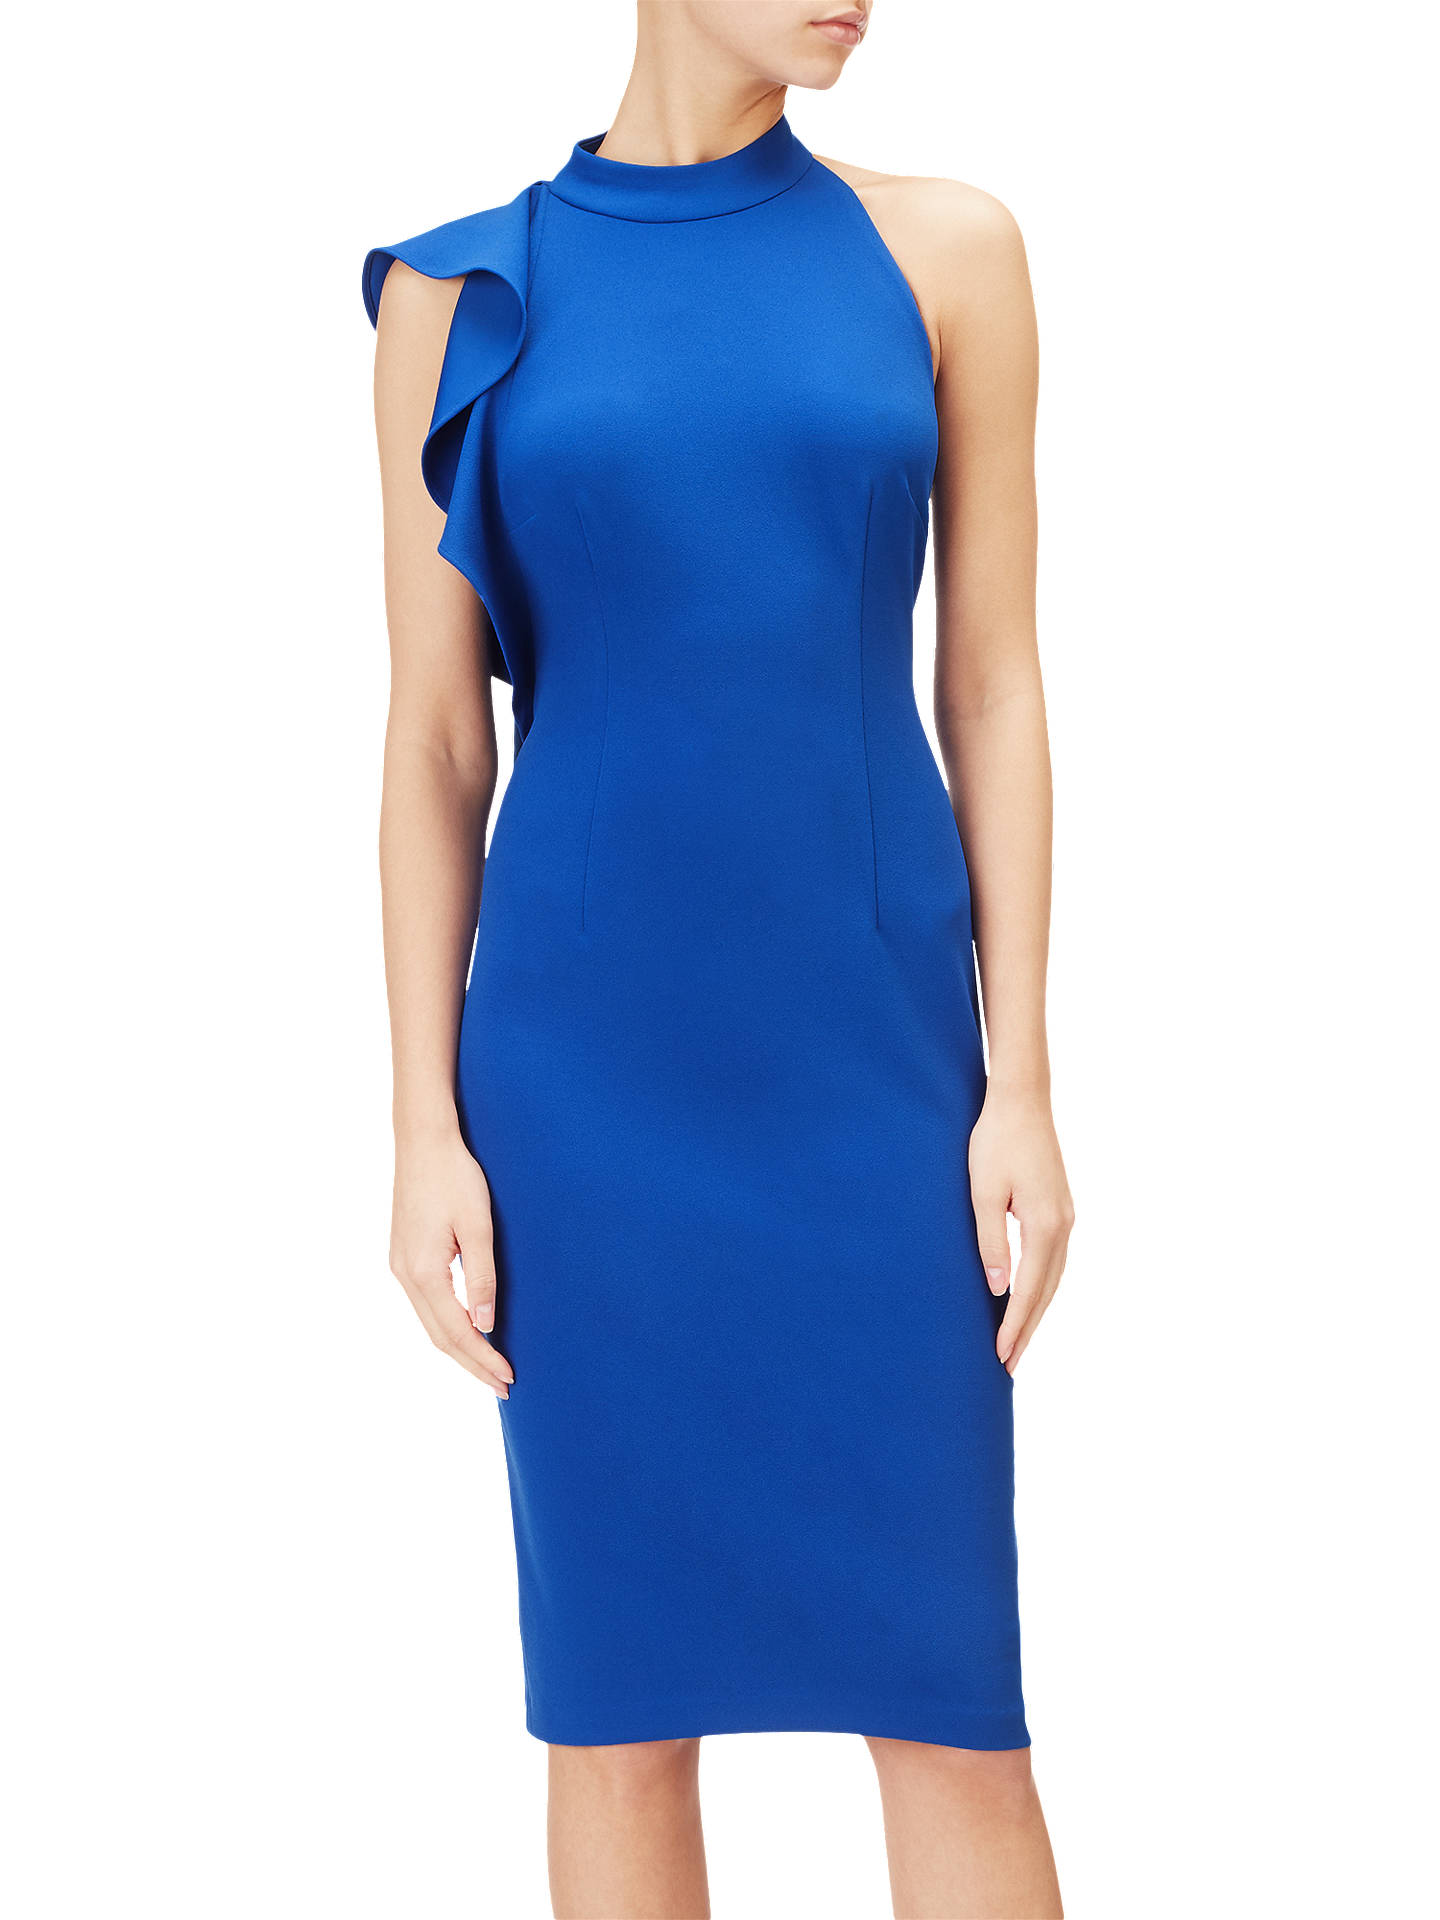 Buy Adrianna Papell Ruffle Crepe Halter Dress, Royal Blue, 6 Online at johnlewis.com